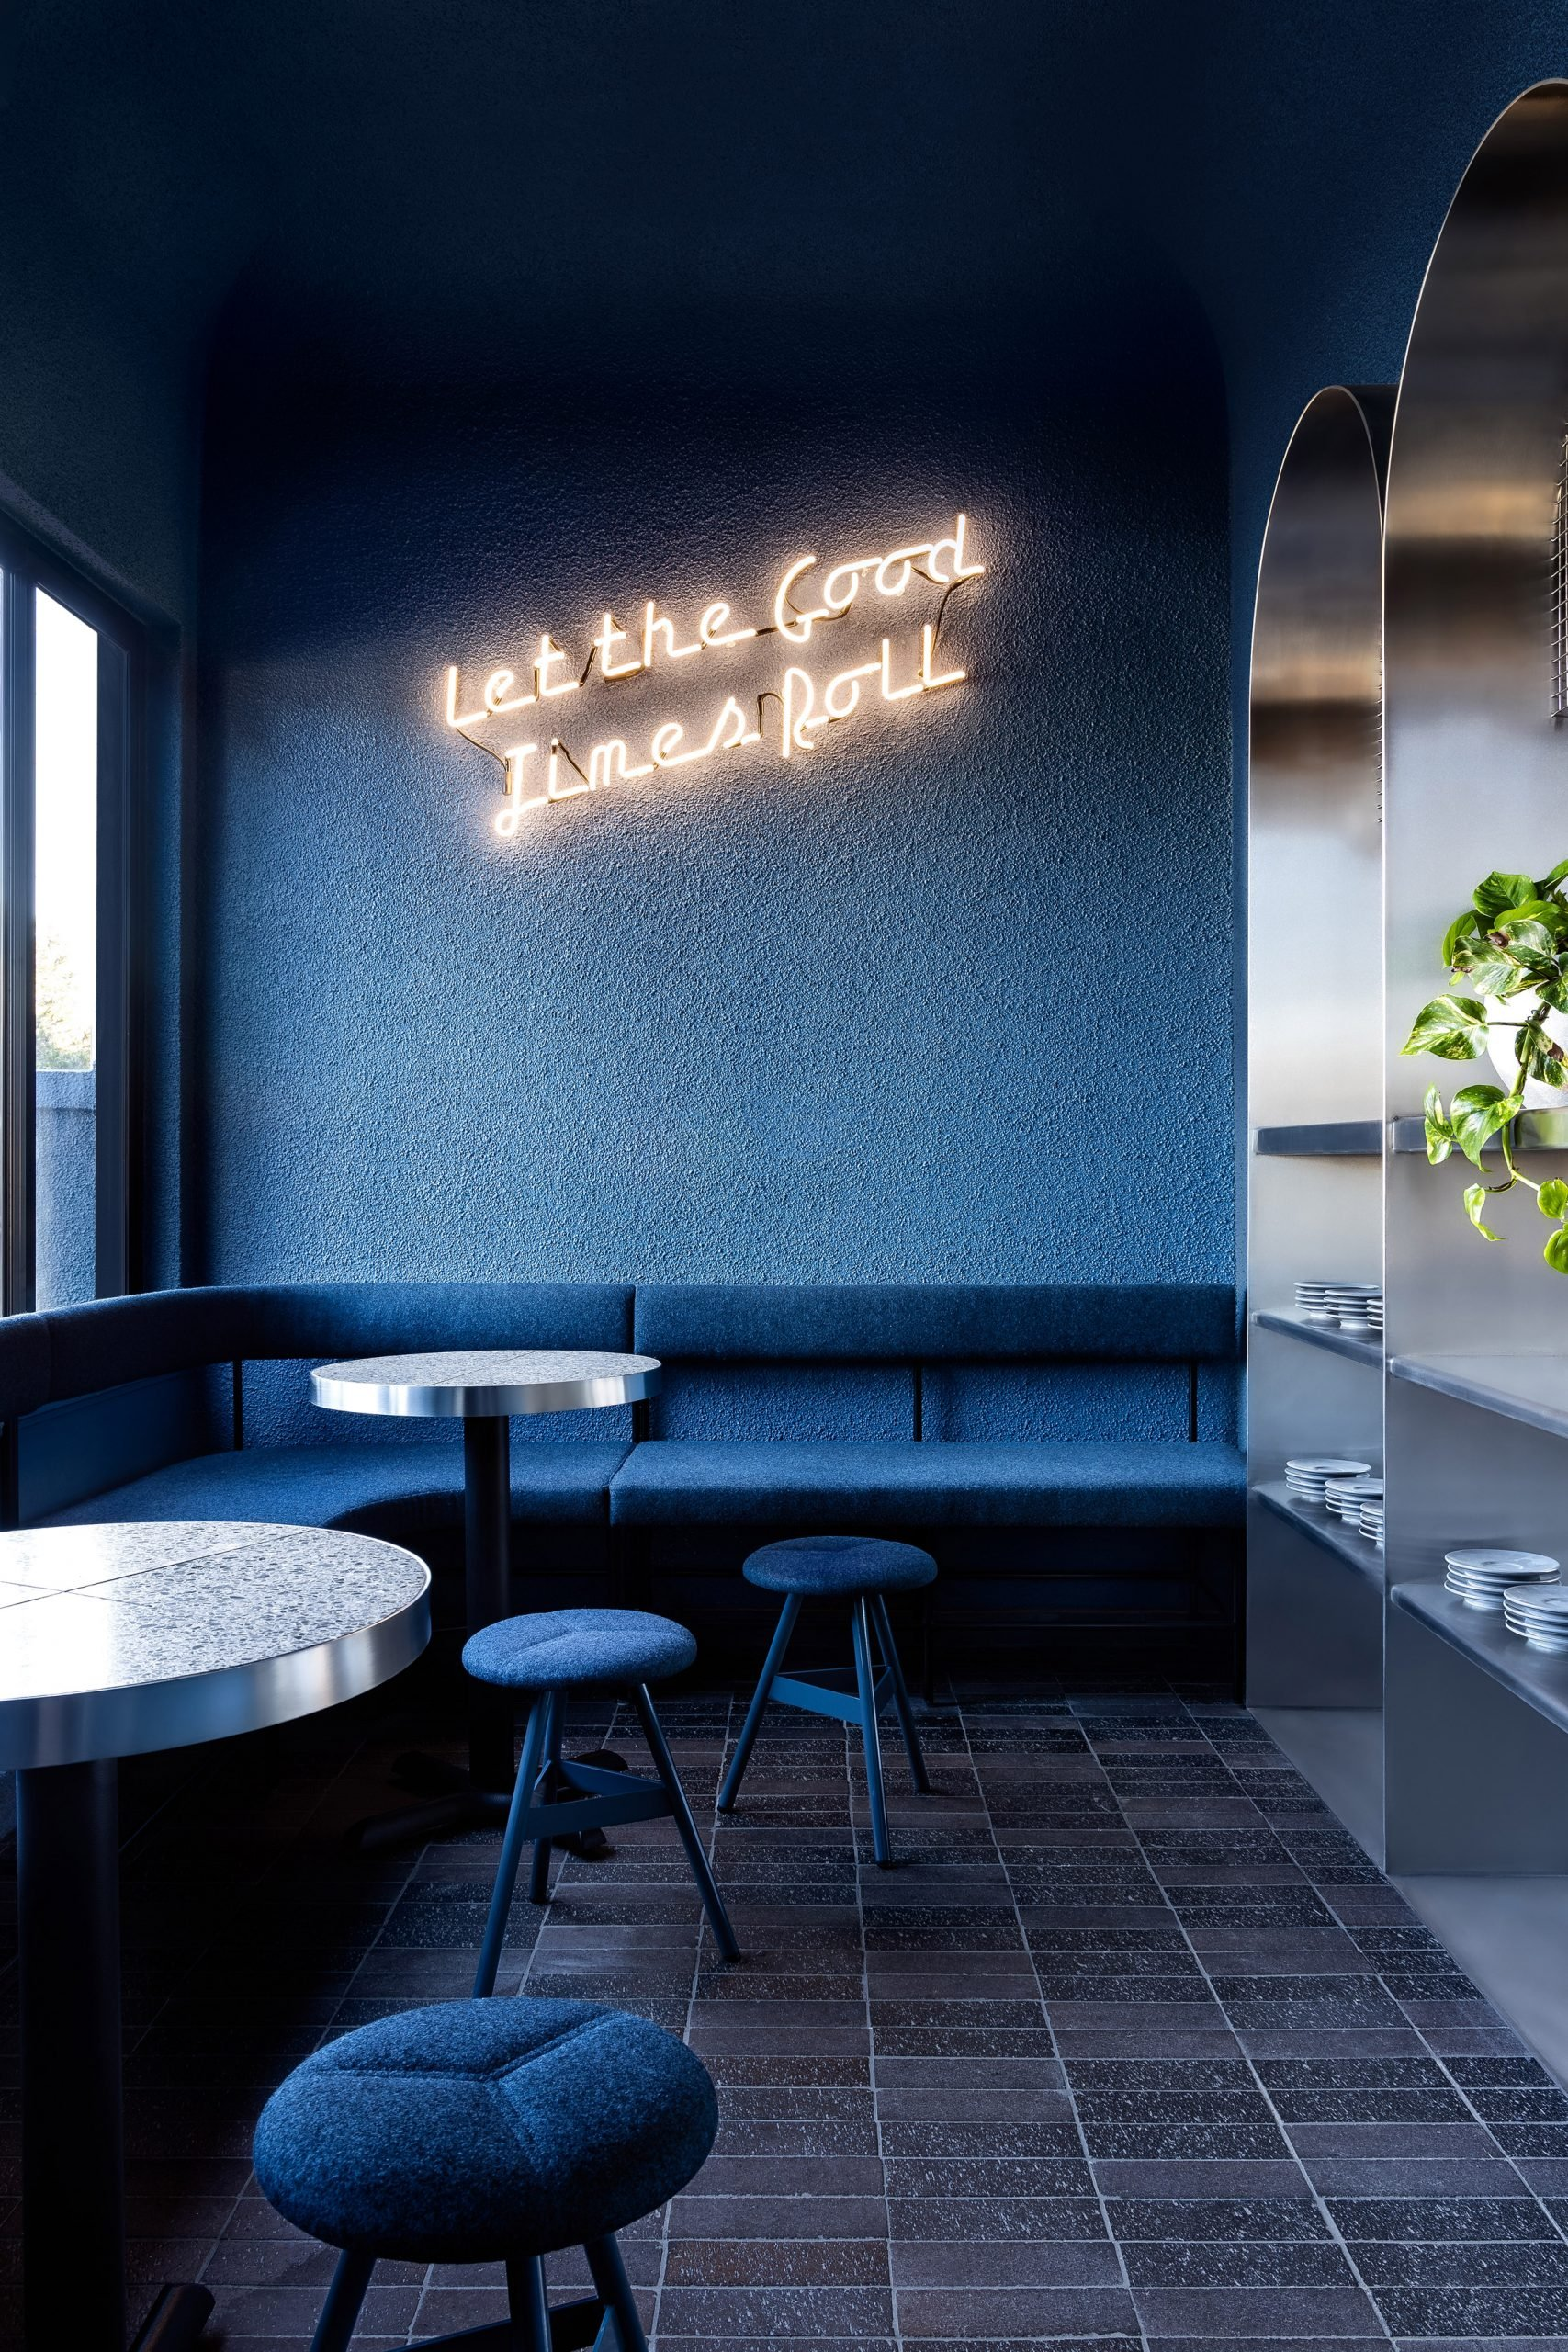 Billie Buoy restaurant in Melbourne designed by Biasol